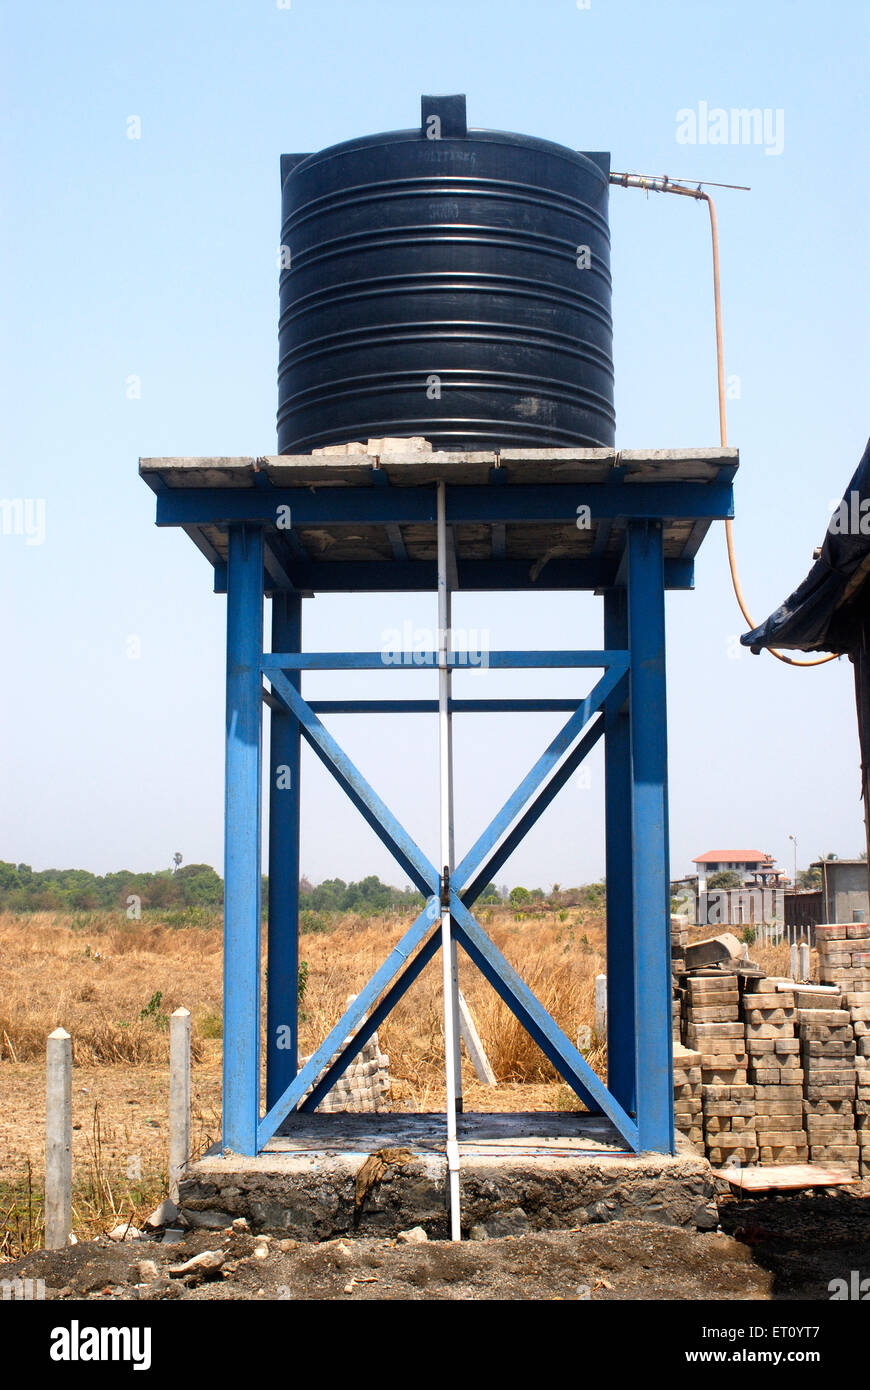 Elevated Water Tank Stock Photos & Elevated Water Tank Stock Images